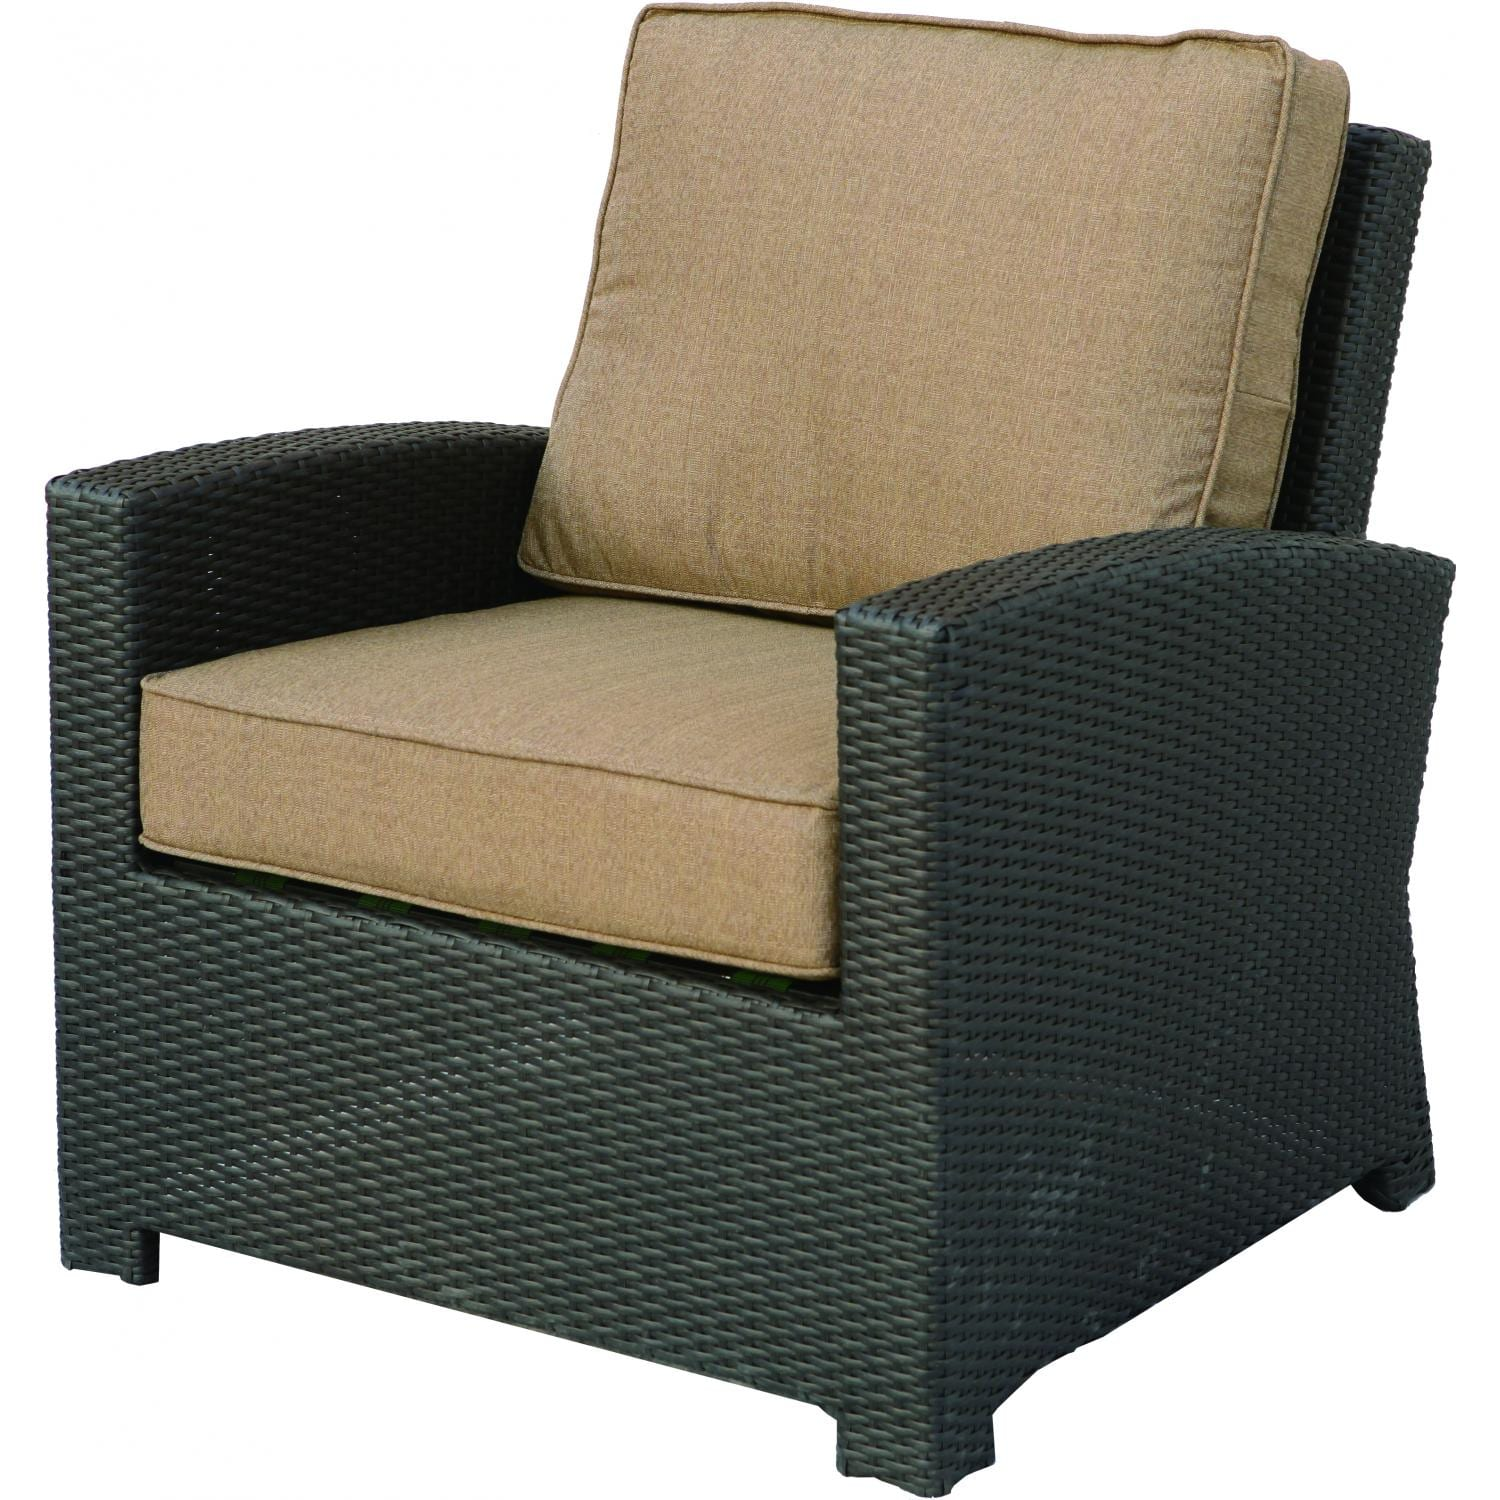 Darlee Vienna Resin Wicker Patio Club Chair